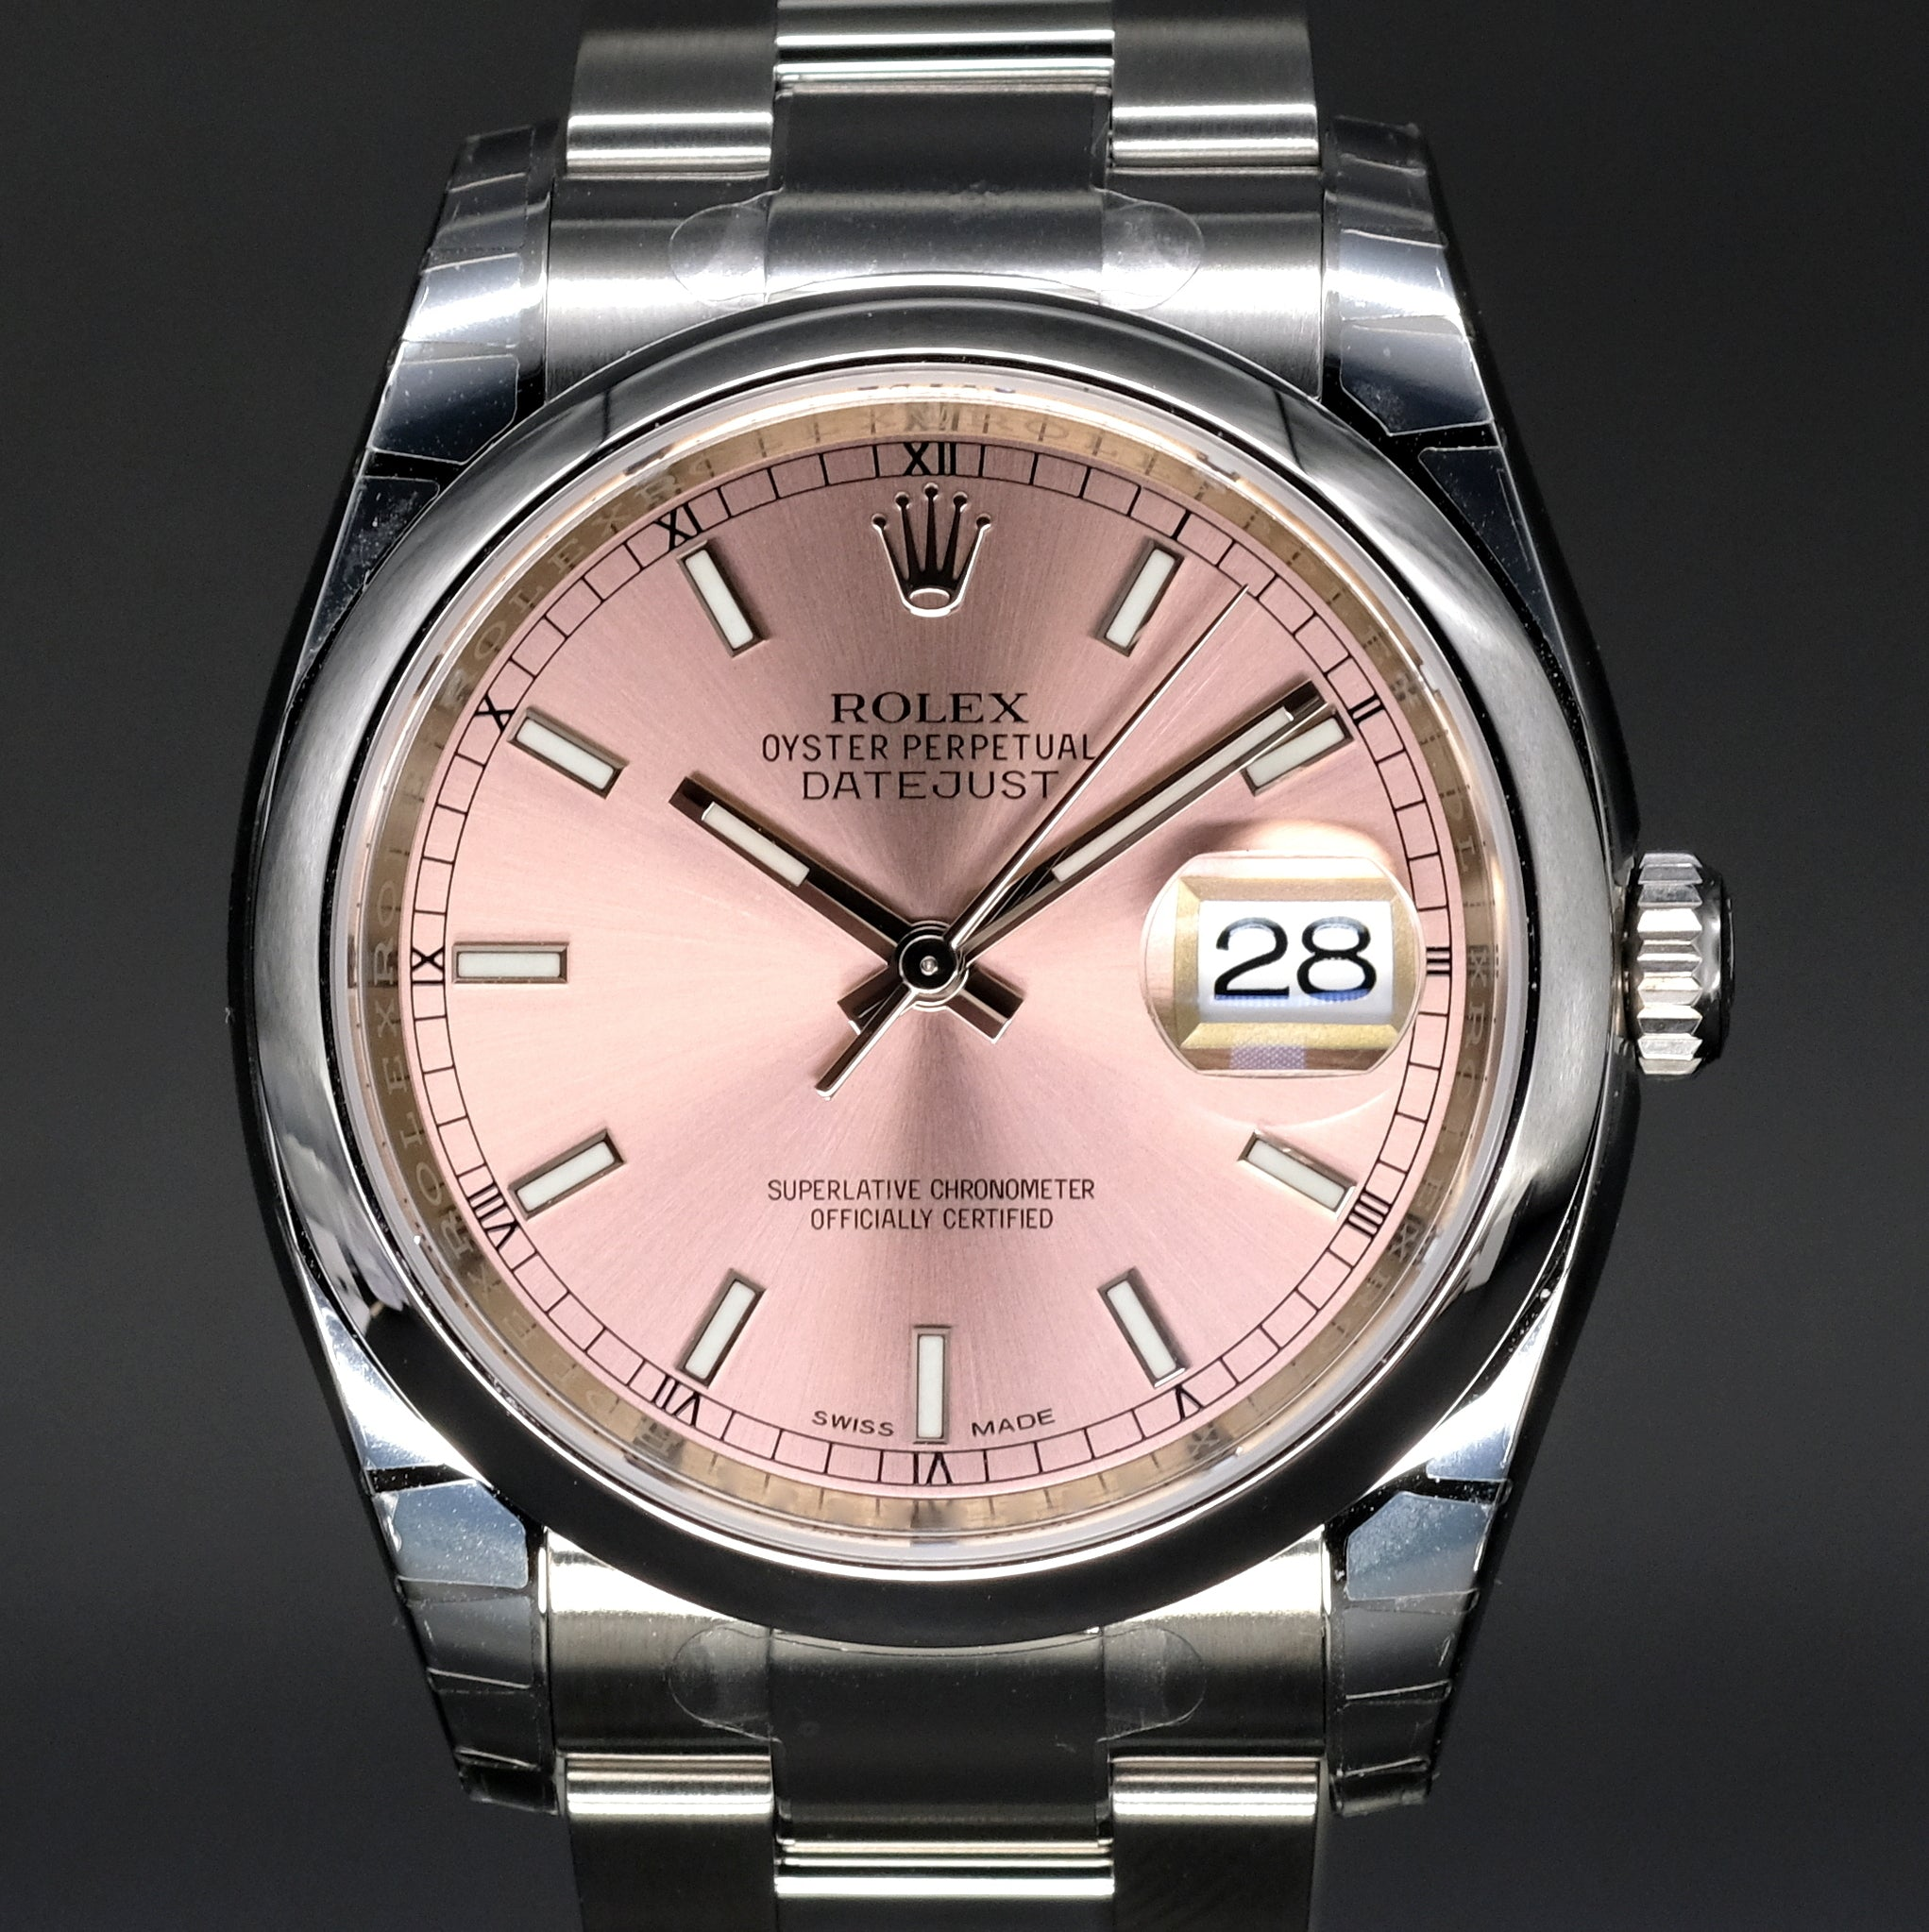 [Brand New Watch] Rolex Datejust 36mm 116200 Pink Index Dial (Oyster Bracelet)